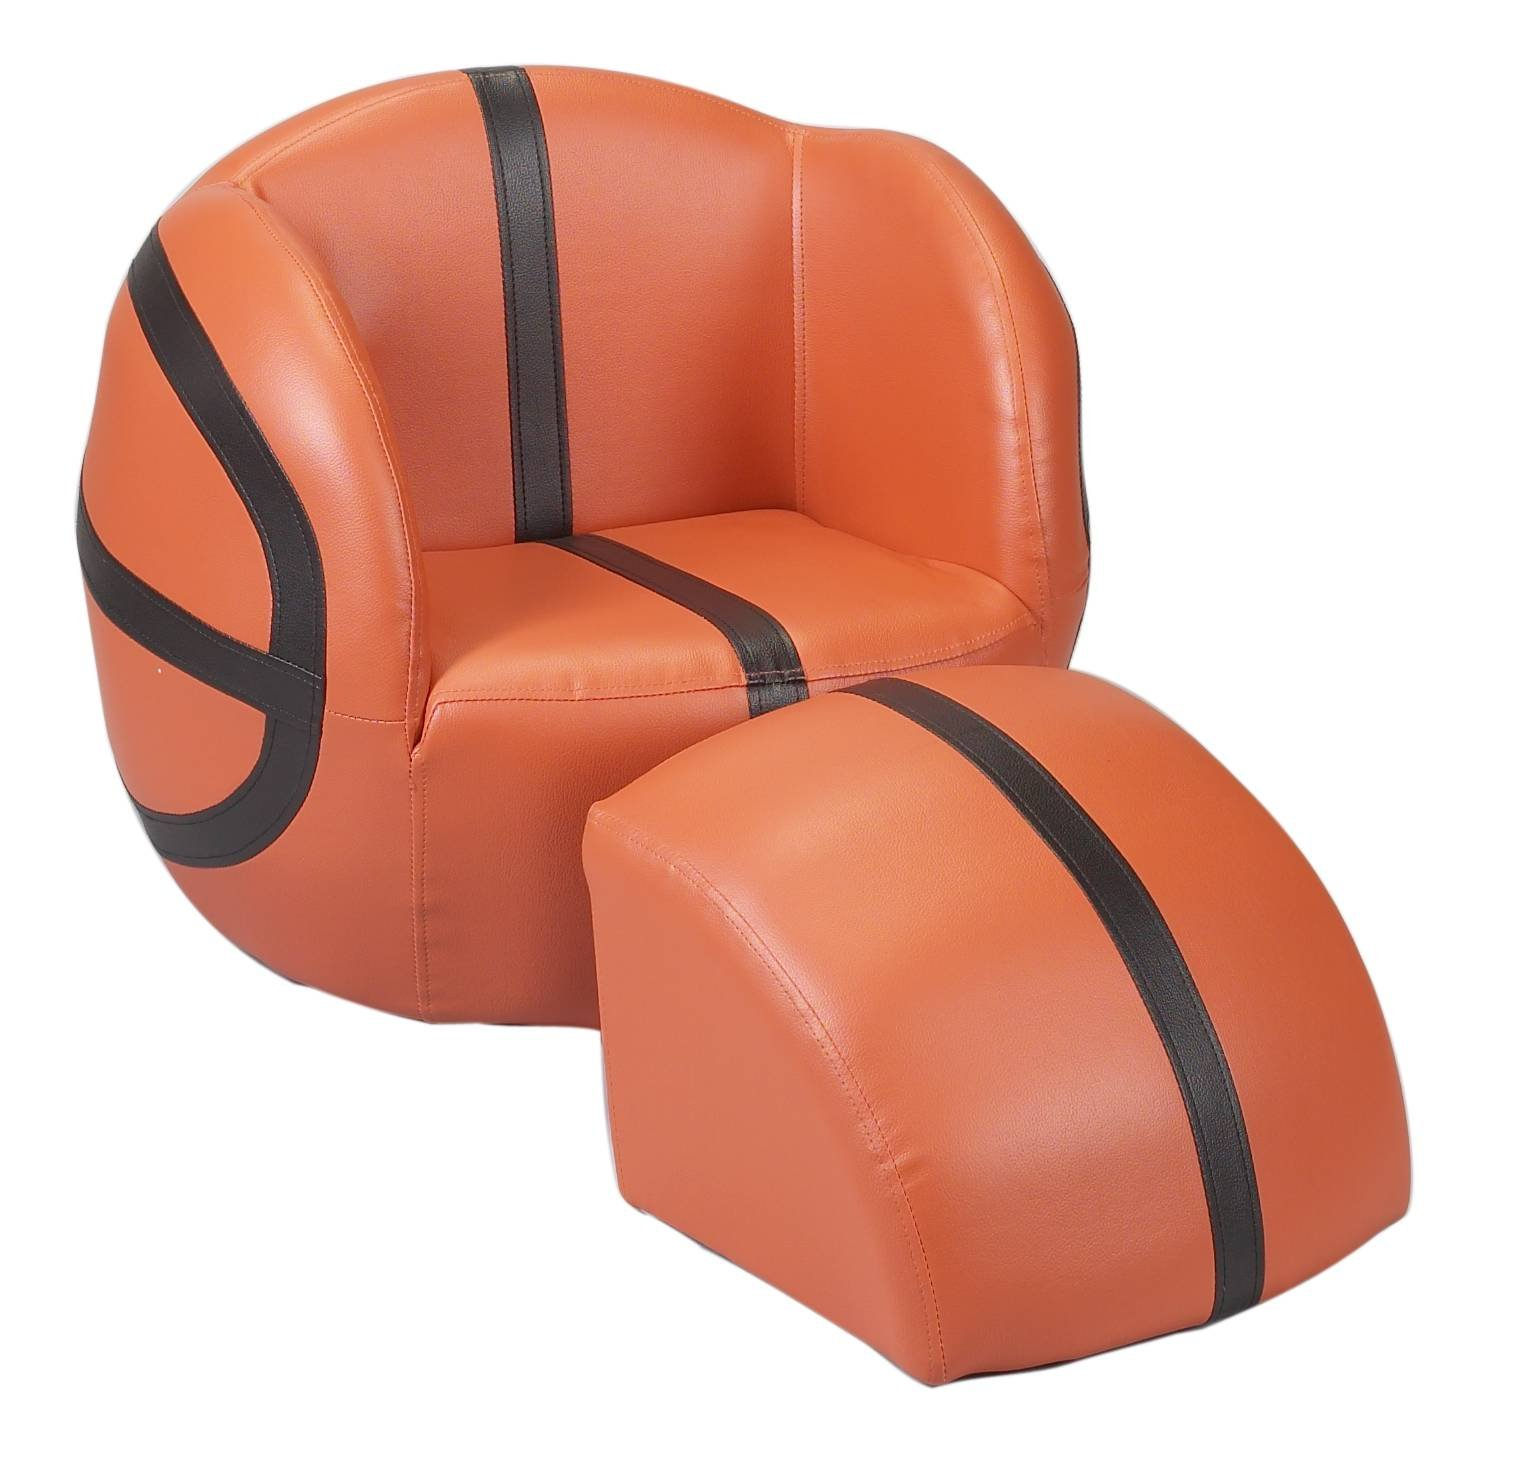 Gift Mark Chair and Ottoman Basketball  sc 1 st  Amazon.com : basketball chairs - lorbestier.org